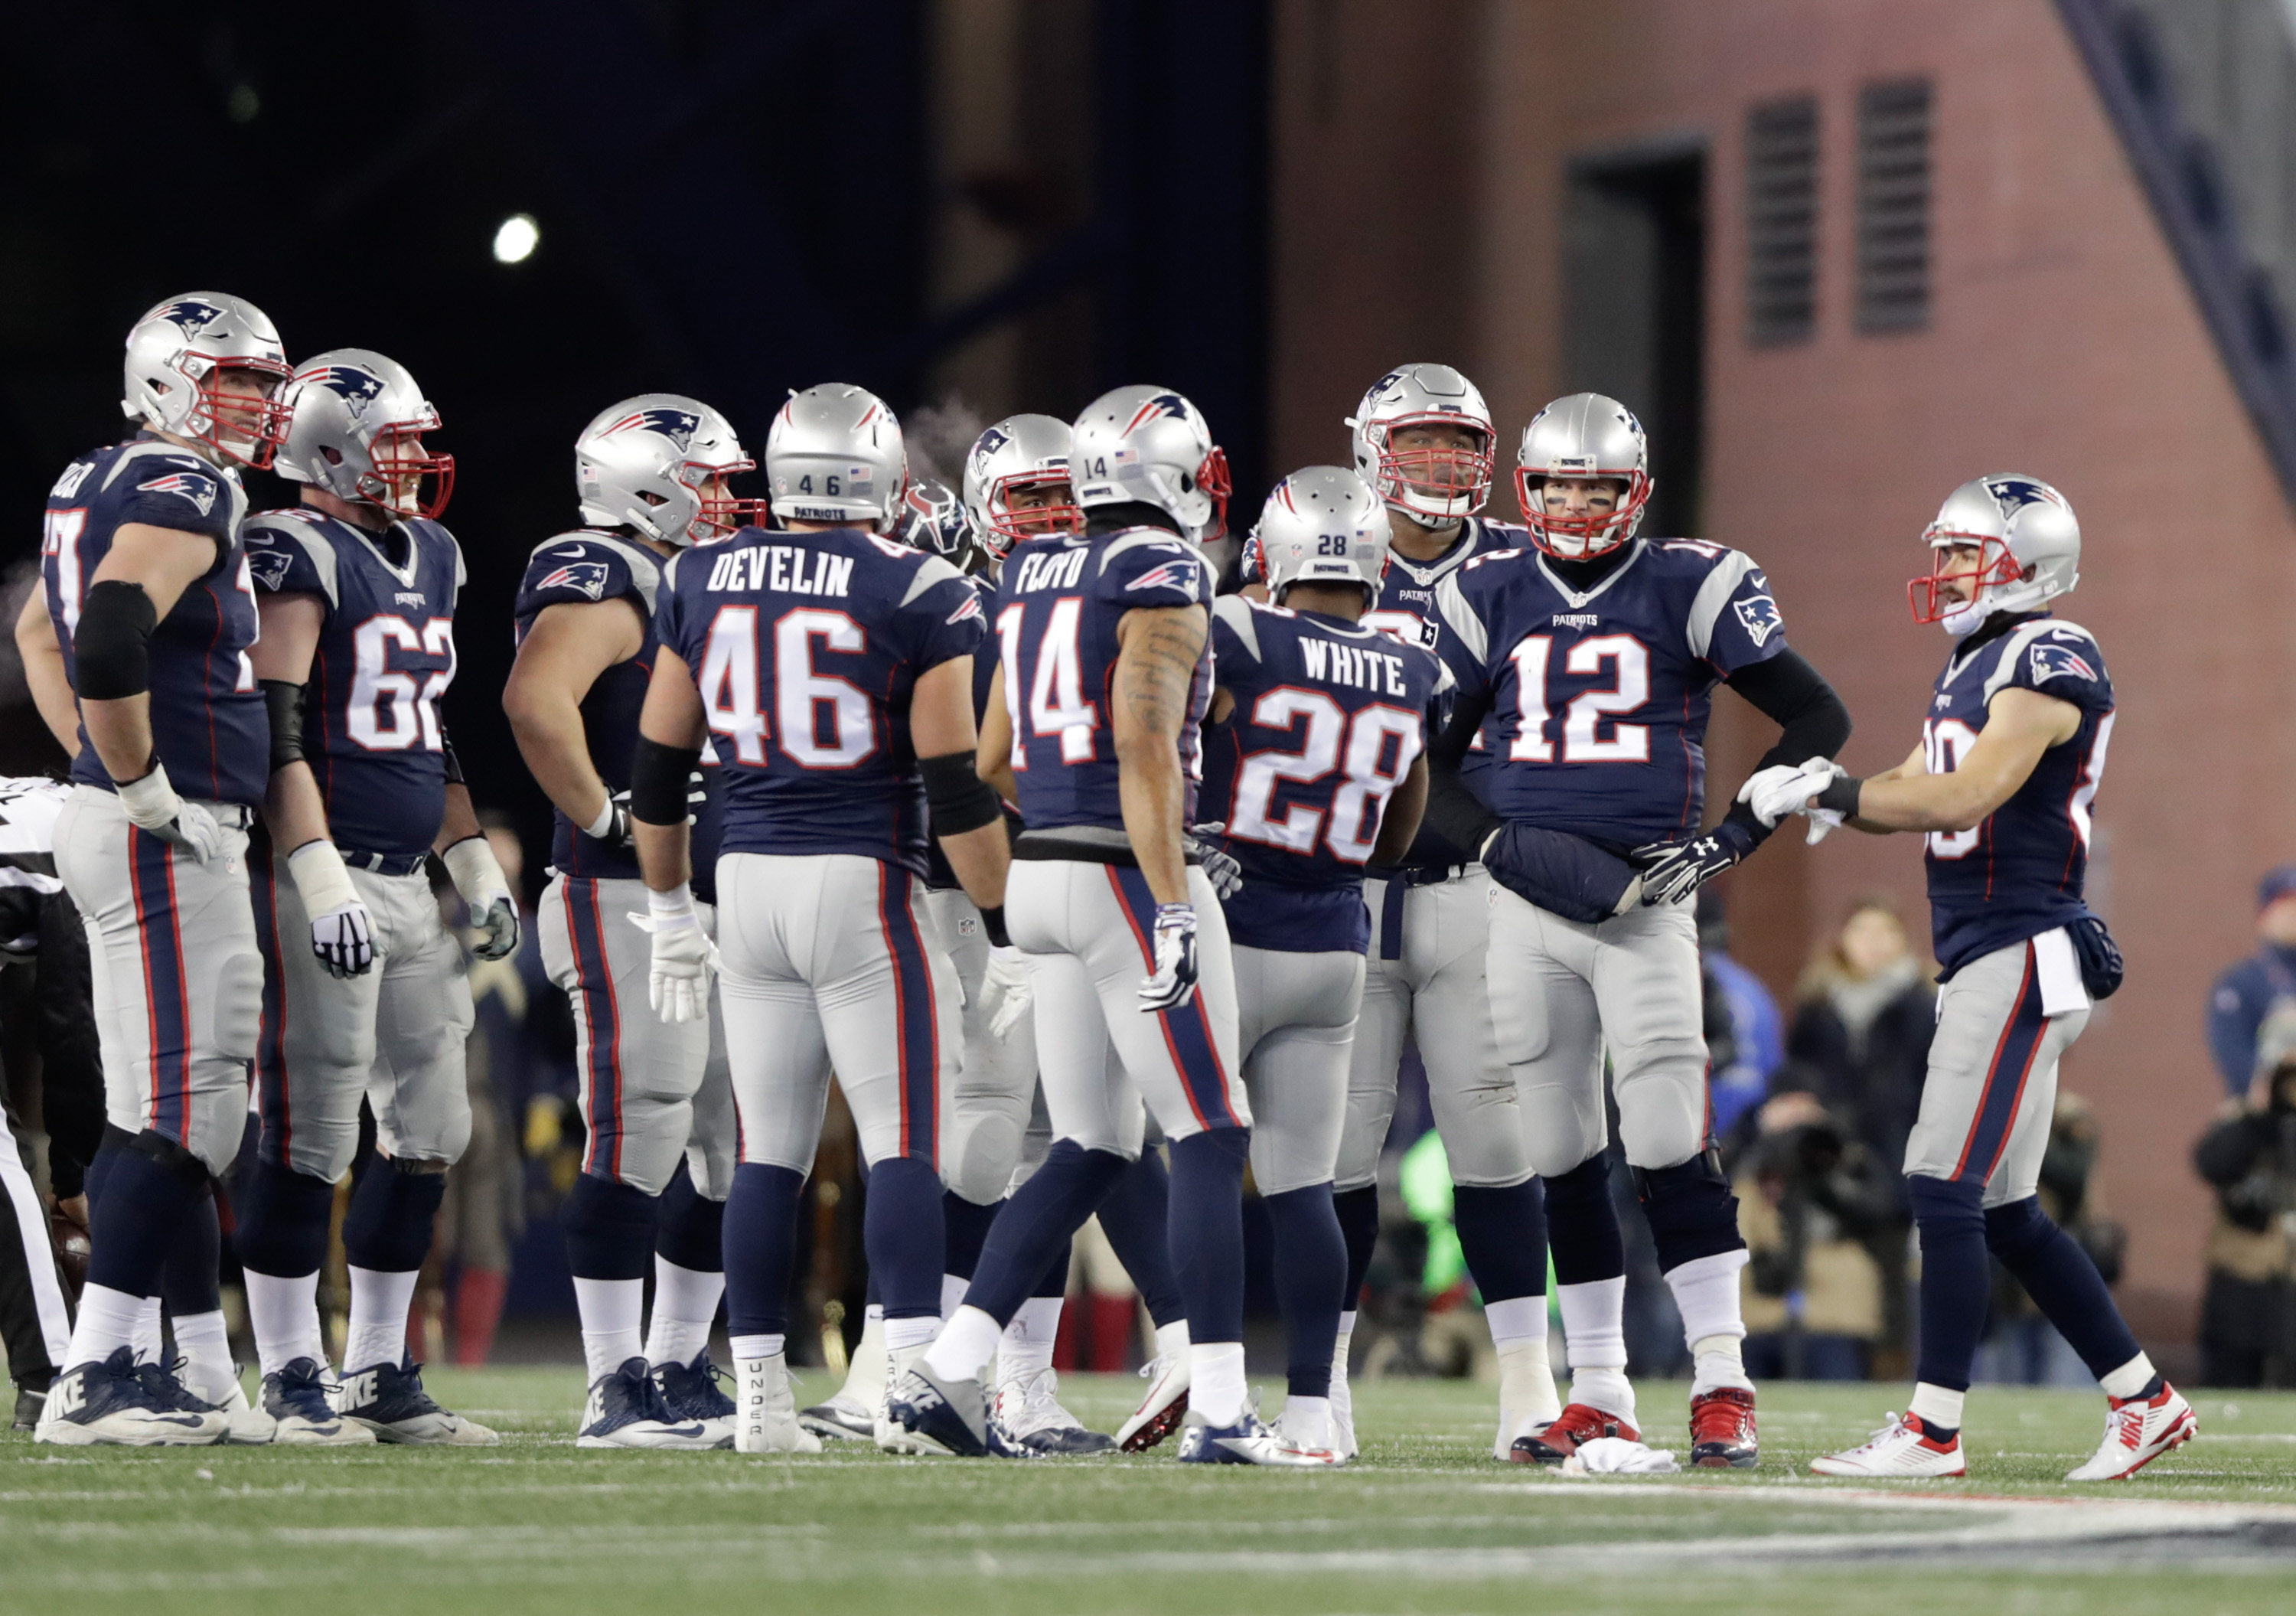 new england patriots greatest strengths heading into super bowl new england patriots